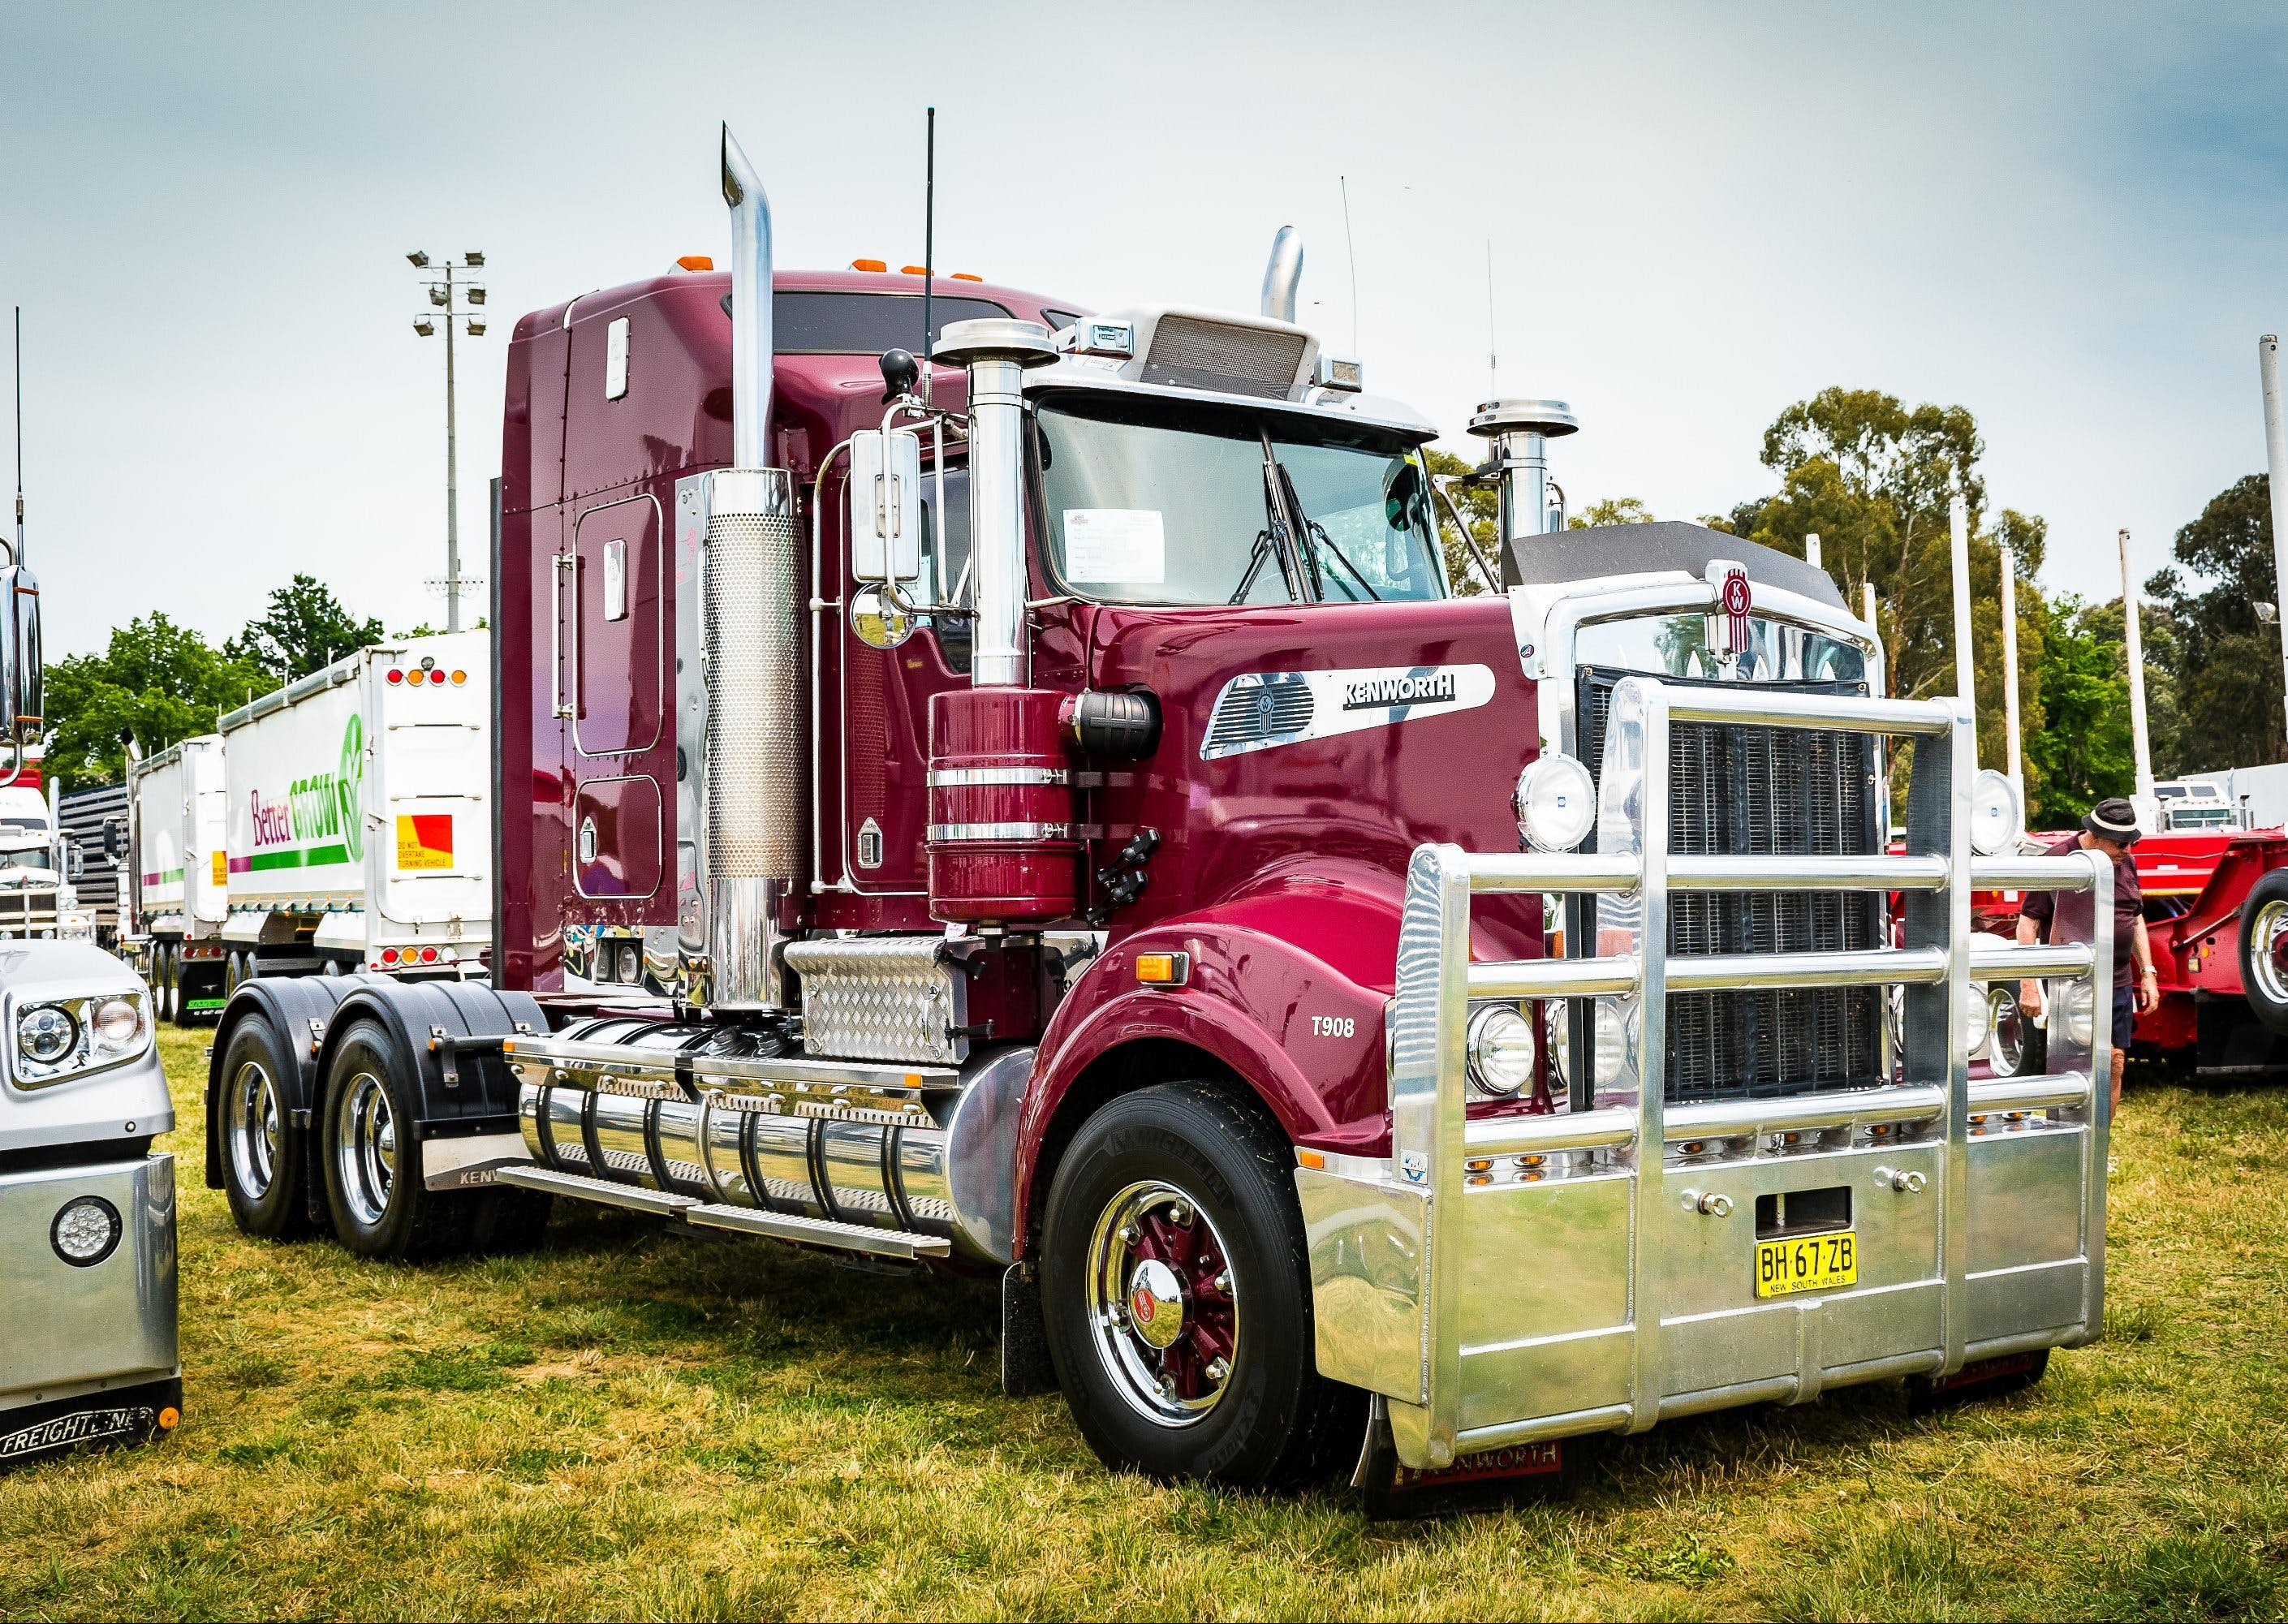 Dane Ballinger Memorial Truck Show - Accommodation Adelaide